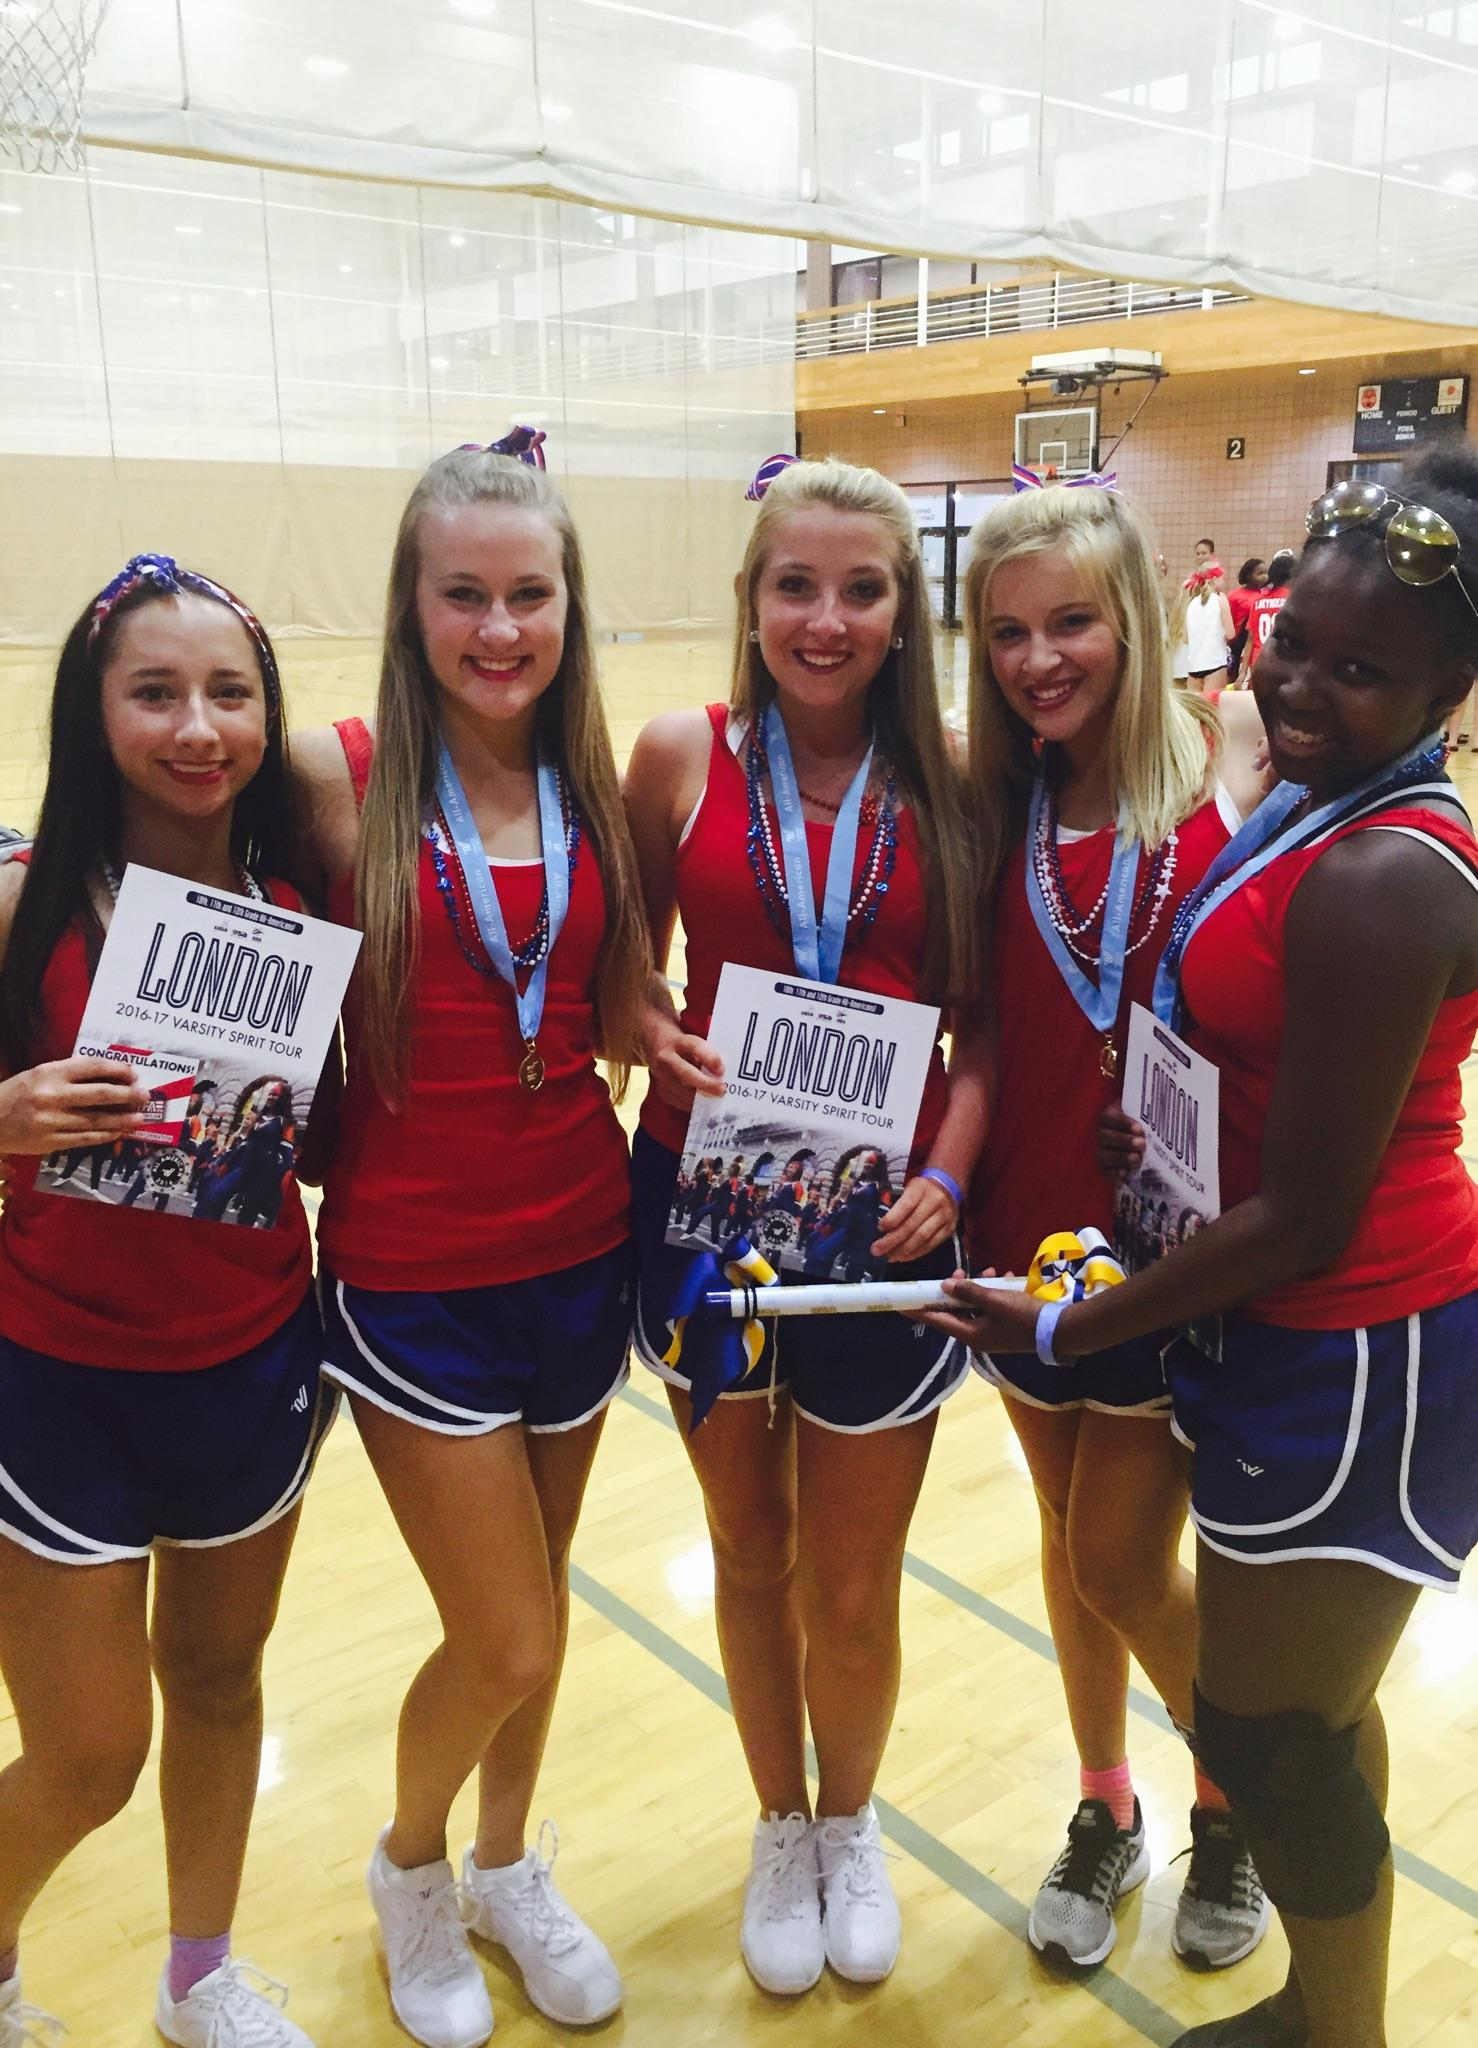 All American honors - Meena Page, Katherine Poole, Ellie Hinton, Madisyn Martin, Ansley Howell.